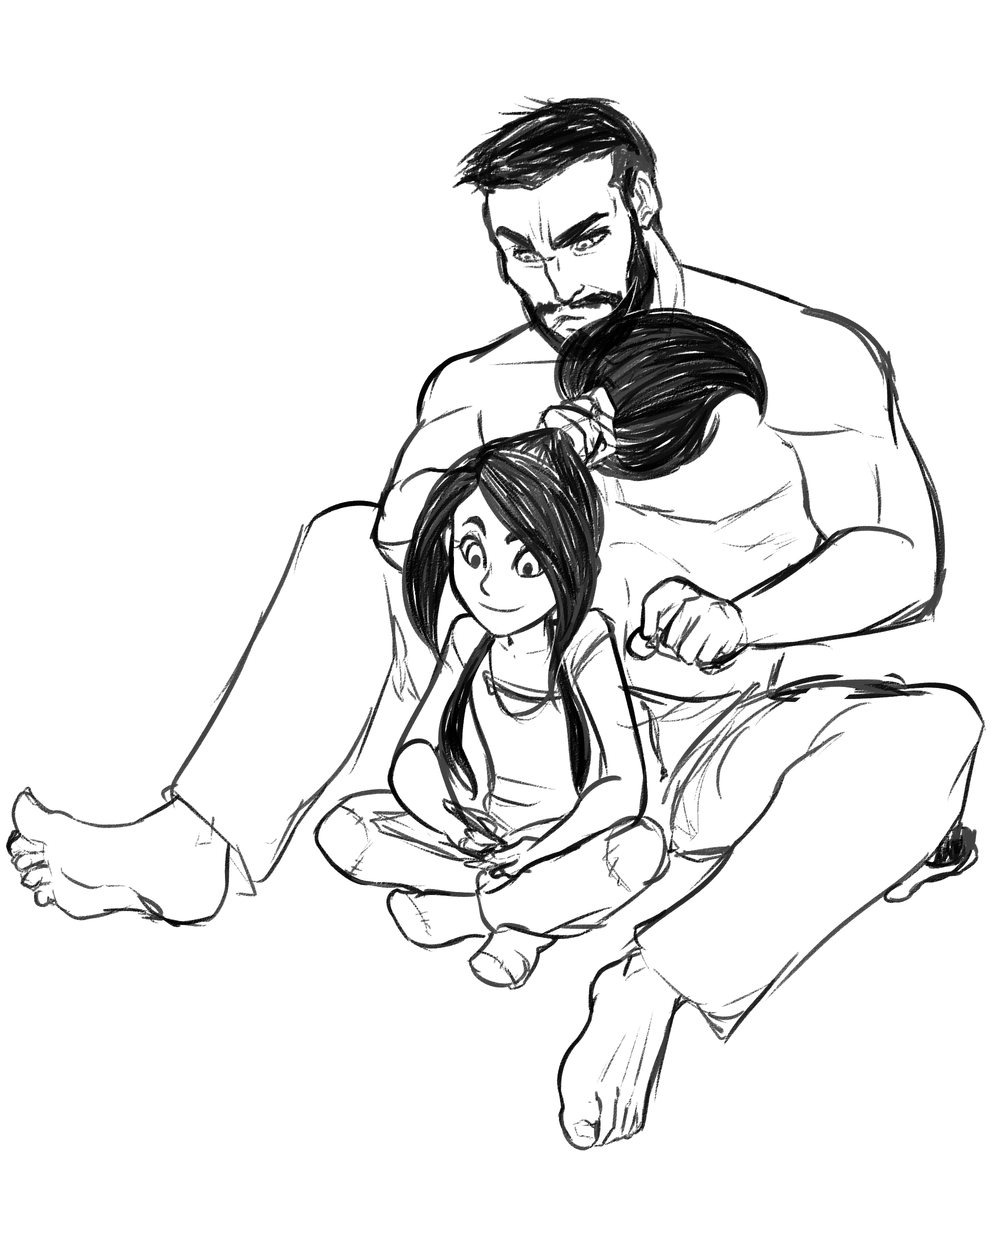 Vivy and Papa by Seph